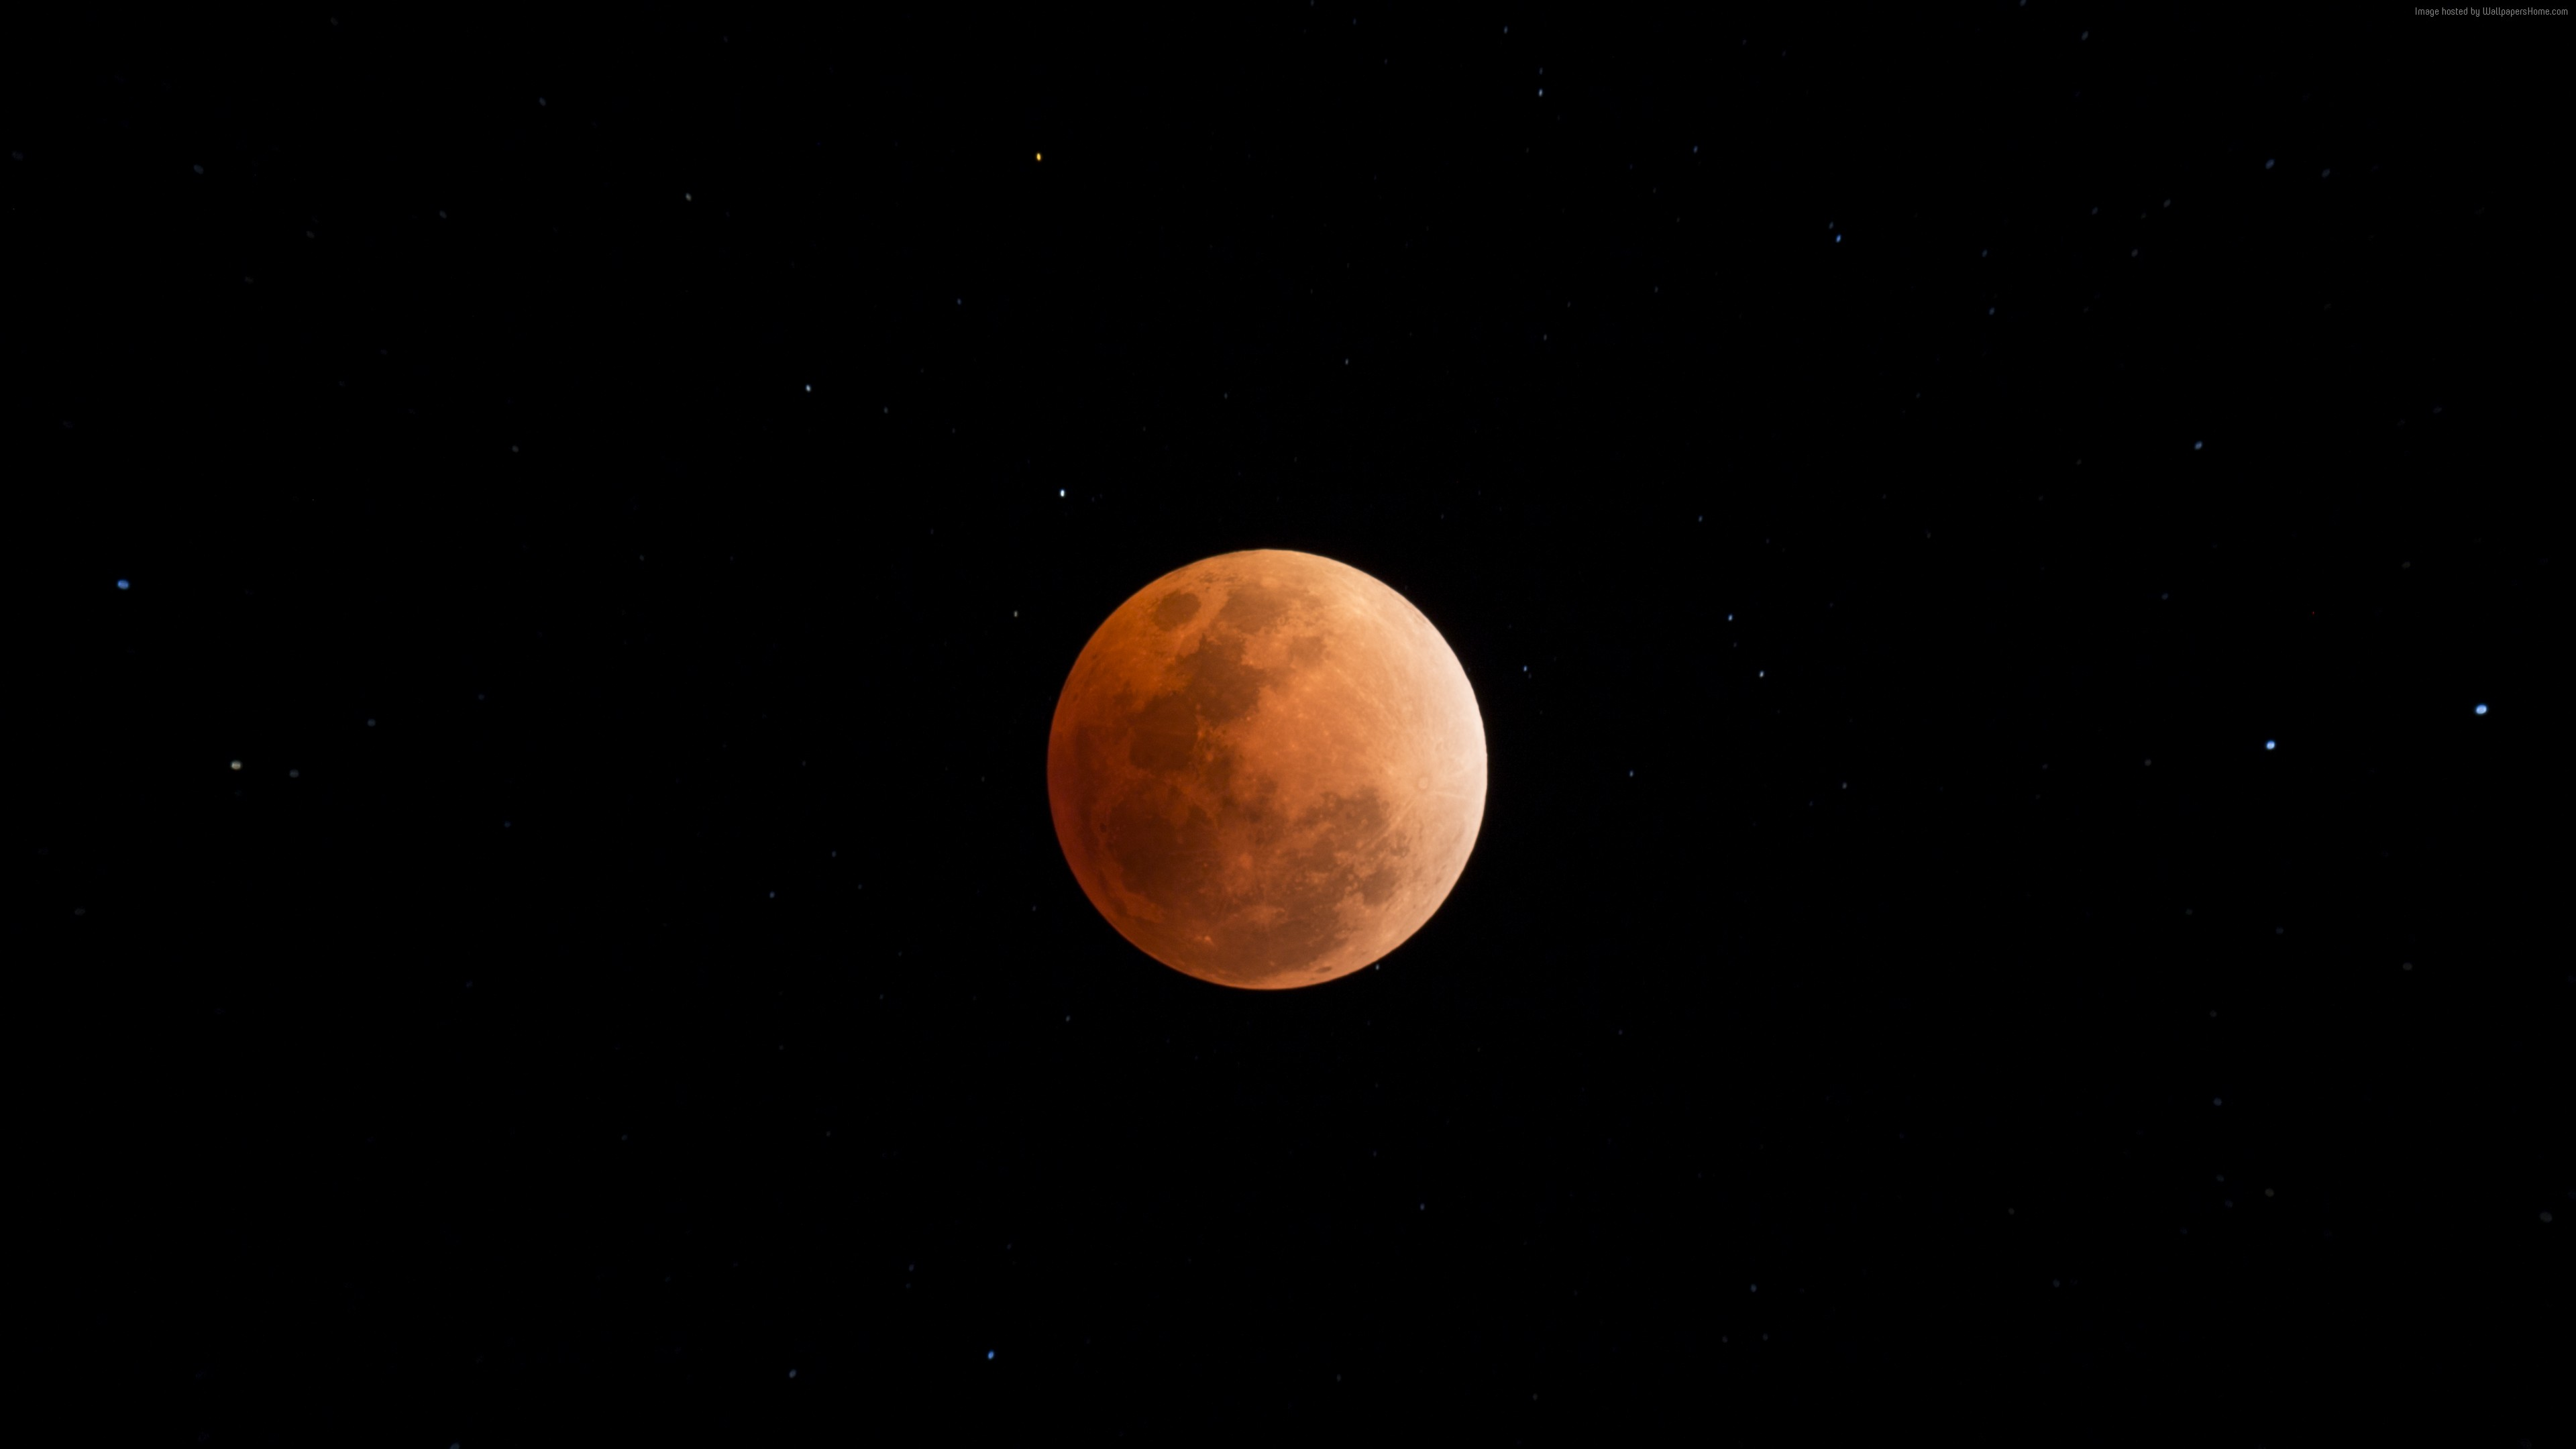 wallpaper moon eclipse, space, 4k, space 4k, moon eclipse, space